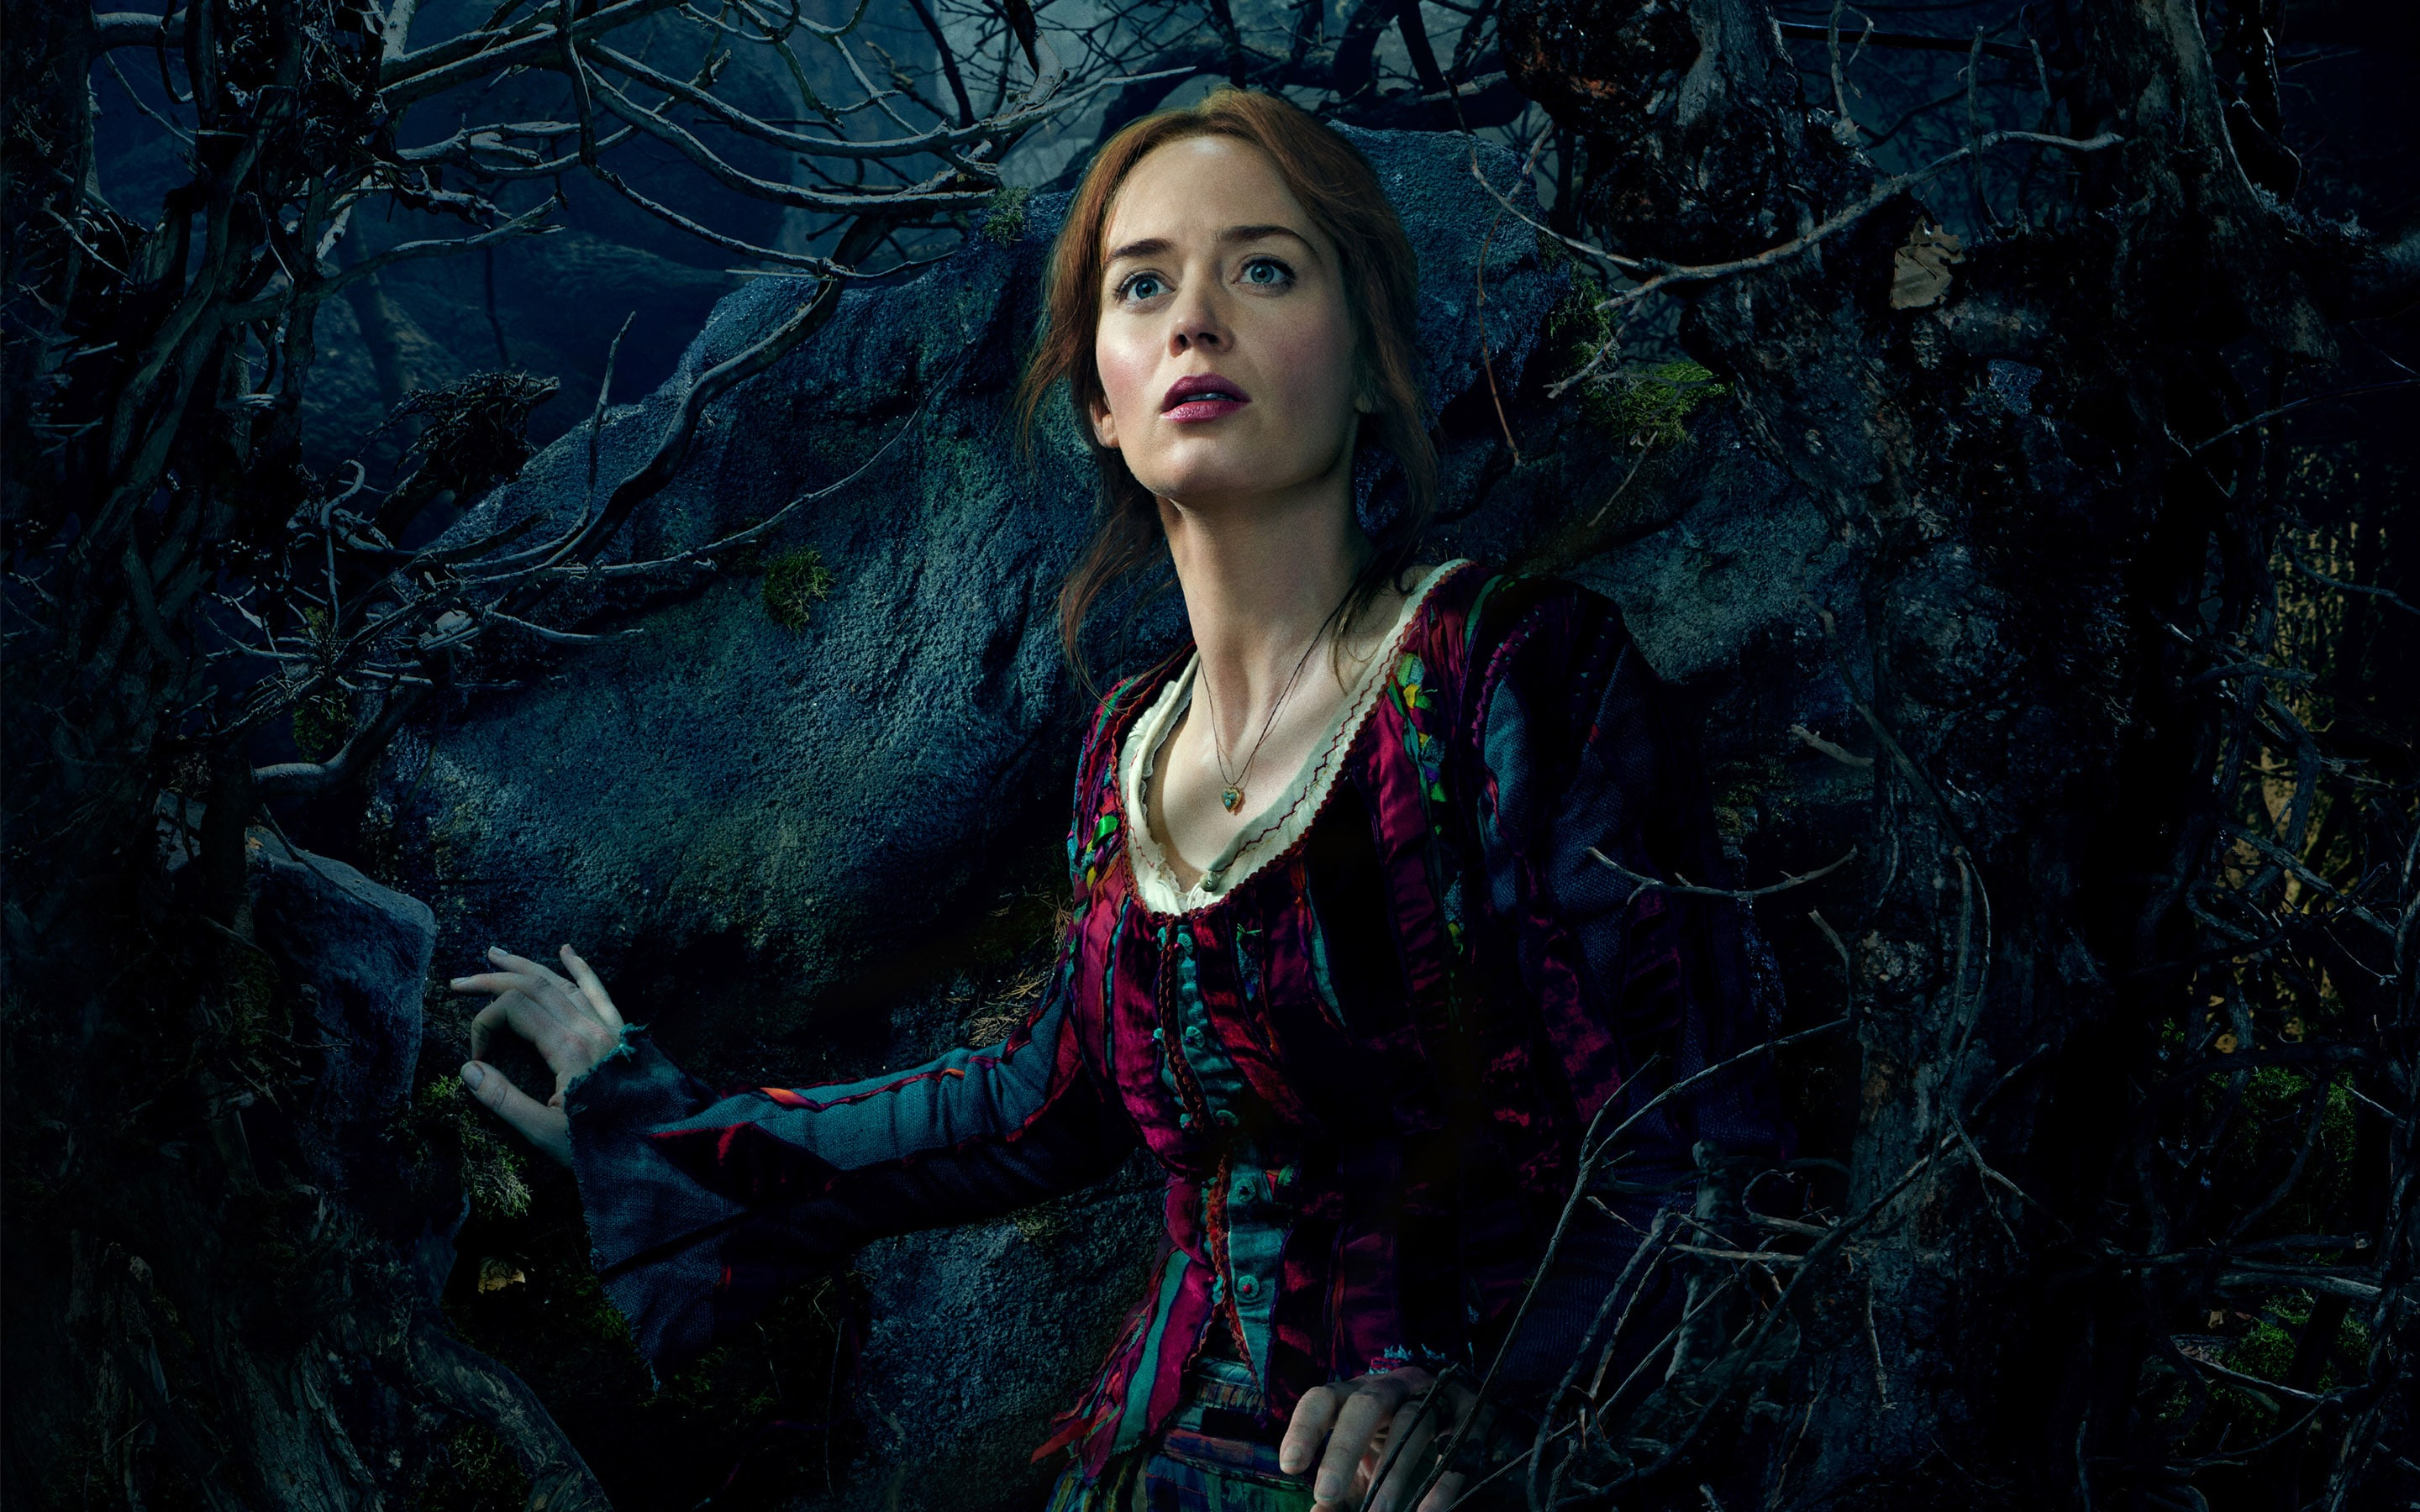 Into The Woods Wallpapers hd